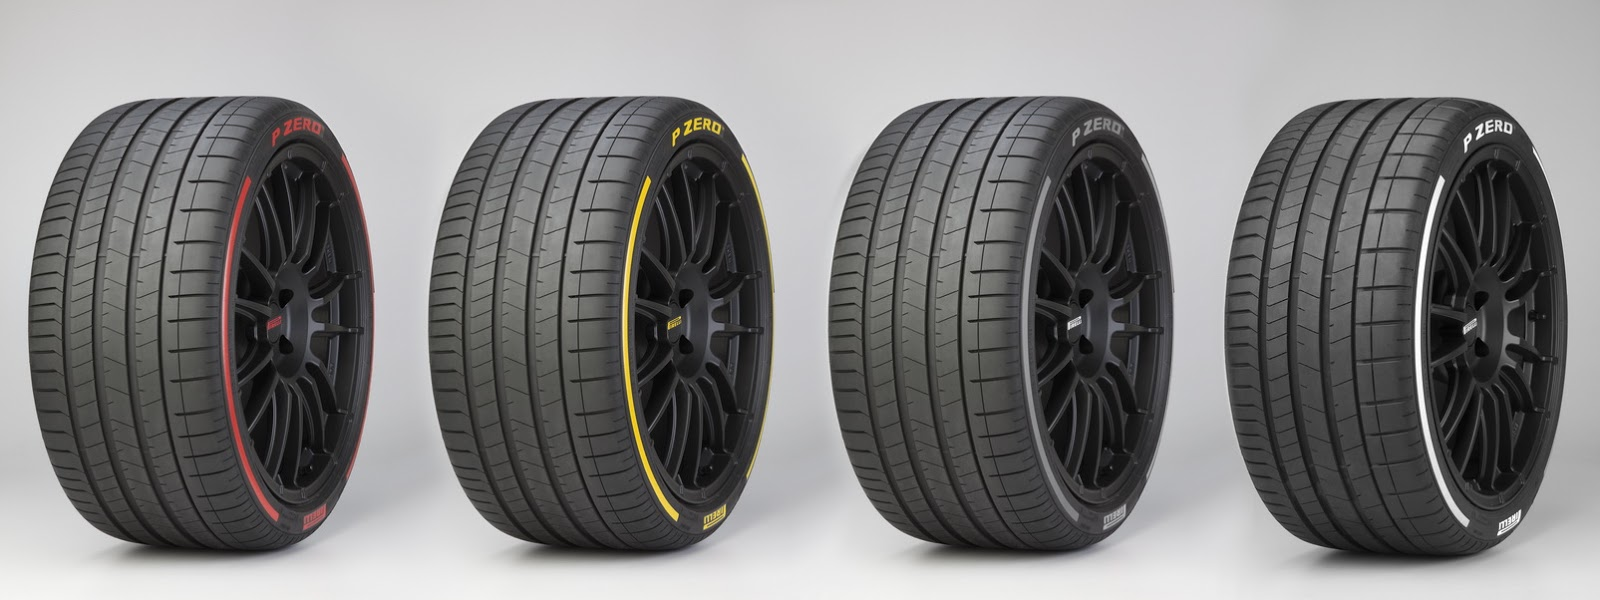 2017 Best Winter Tires >> They have their own app - Pirelli debuts the smartest car tires money can buy